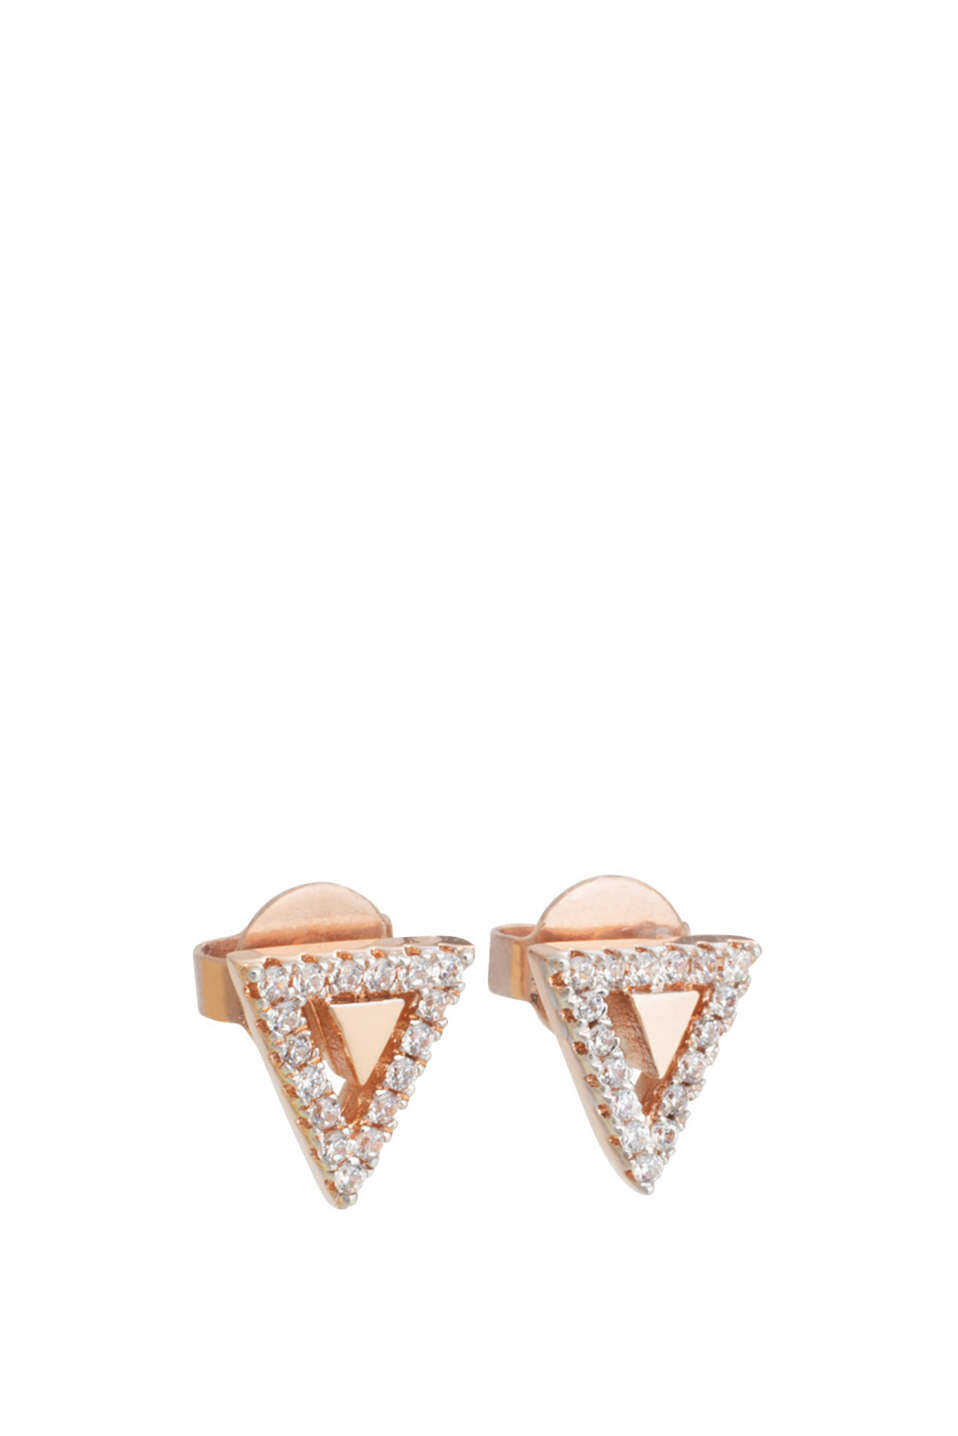 Triangular stud earrings with rose gold plating and white stones, width approx. 8 and 10 mm